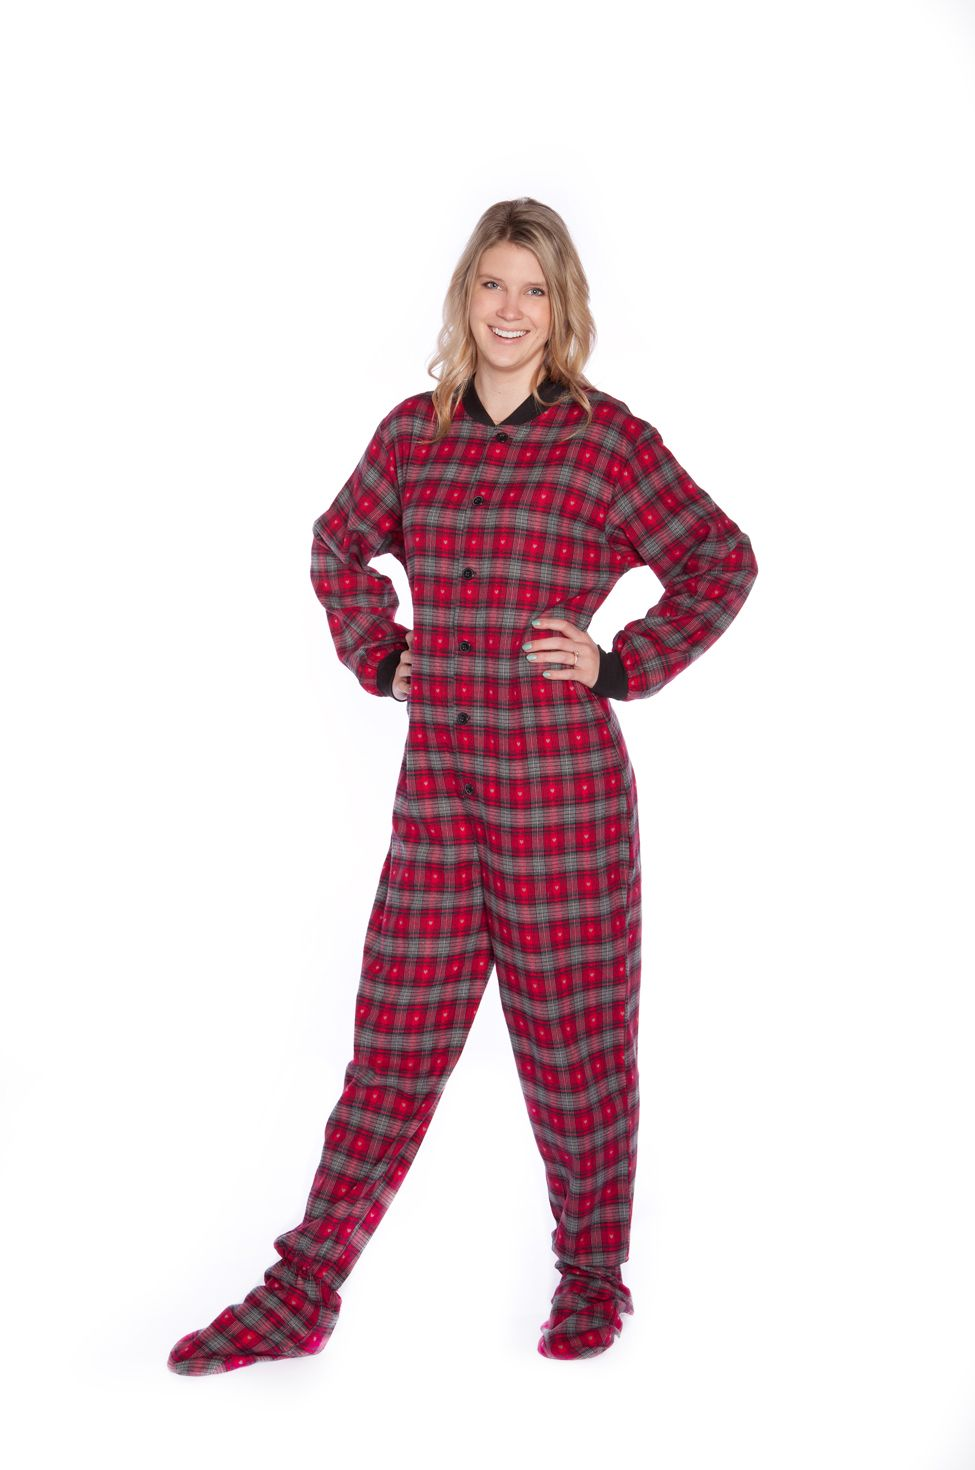 bccb3c10b4 Big Feet Adult Onesie Footie Pajamas Red   Black Plaid with small Grey  Hearts for Men or Women 100% Double Brushed Cotton Flannel available with  butt flap ...